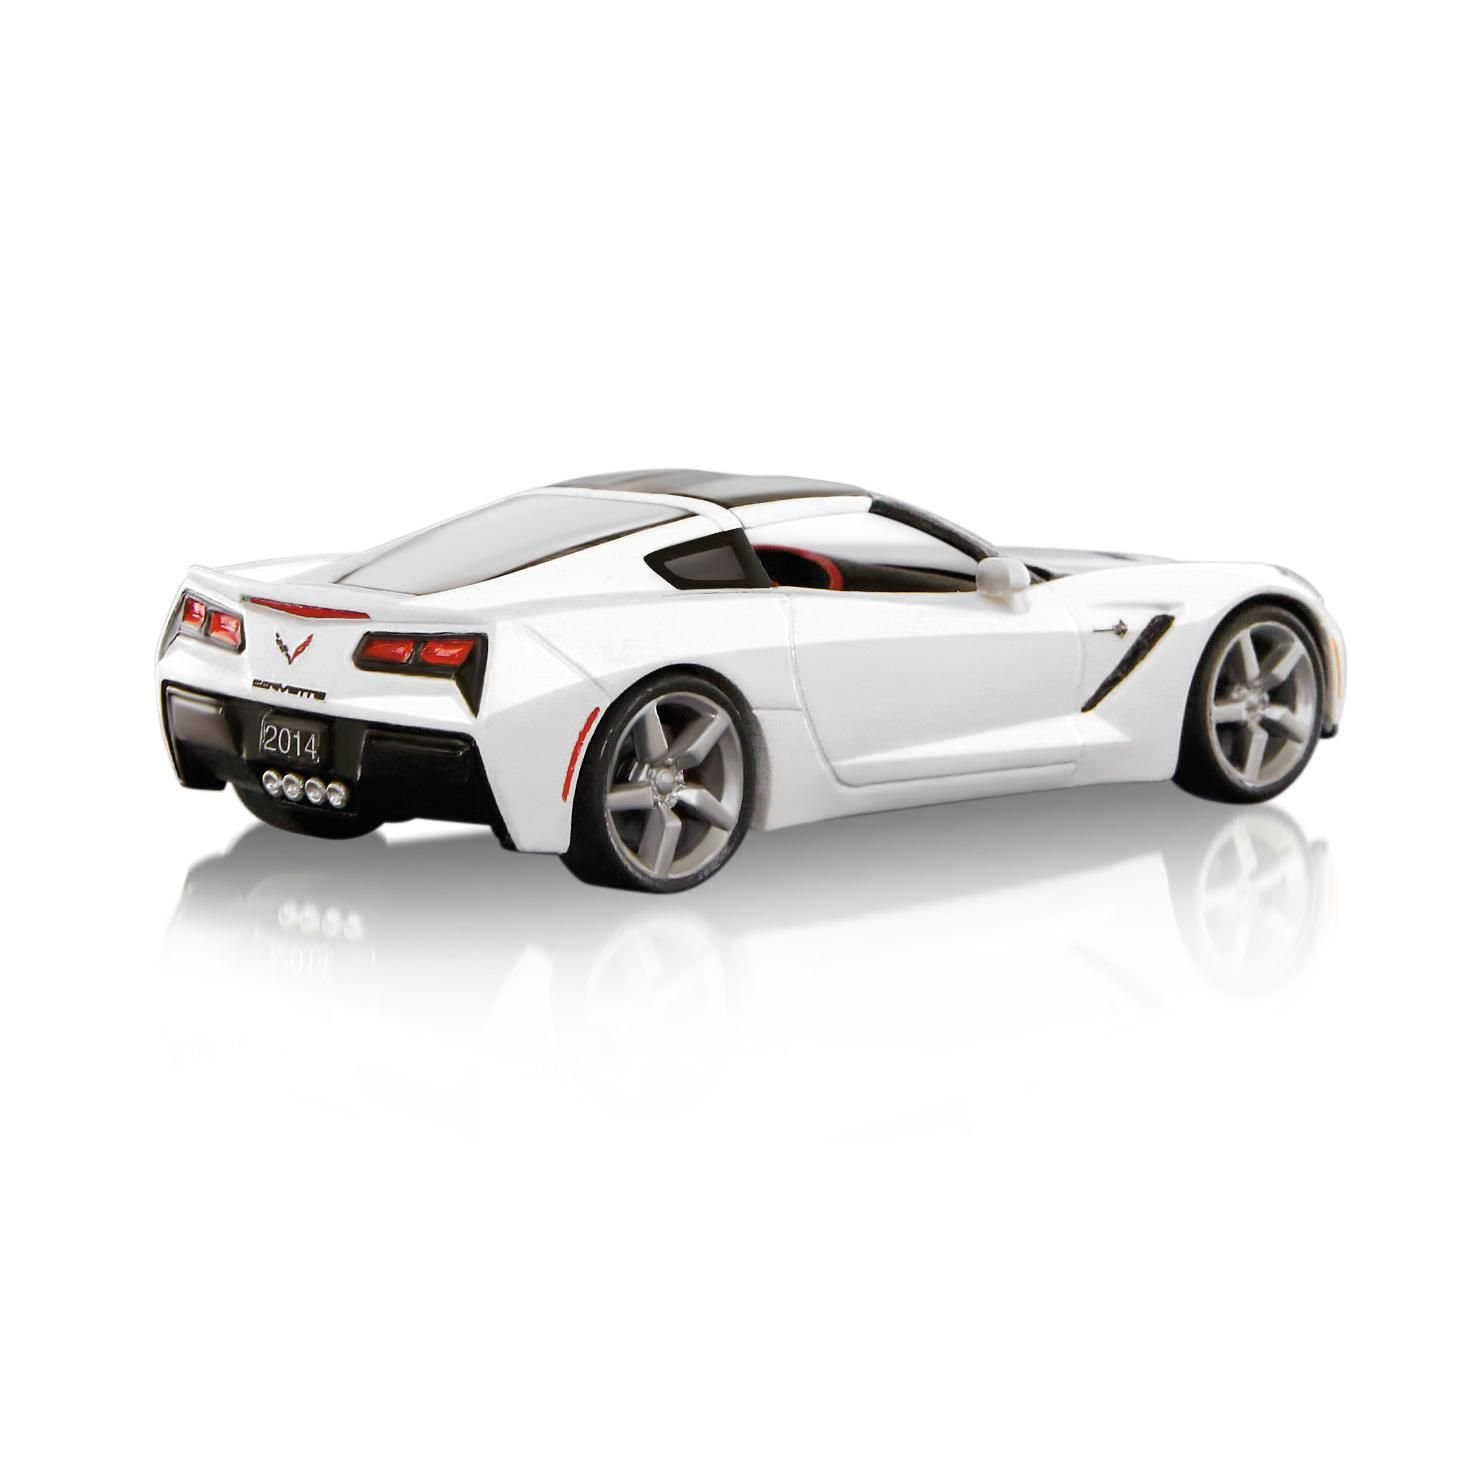 Amazon com 2014 chevrolet corvette stingray 2014 hallmark keepsake ornament home kitchen